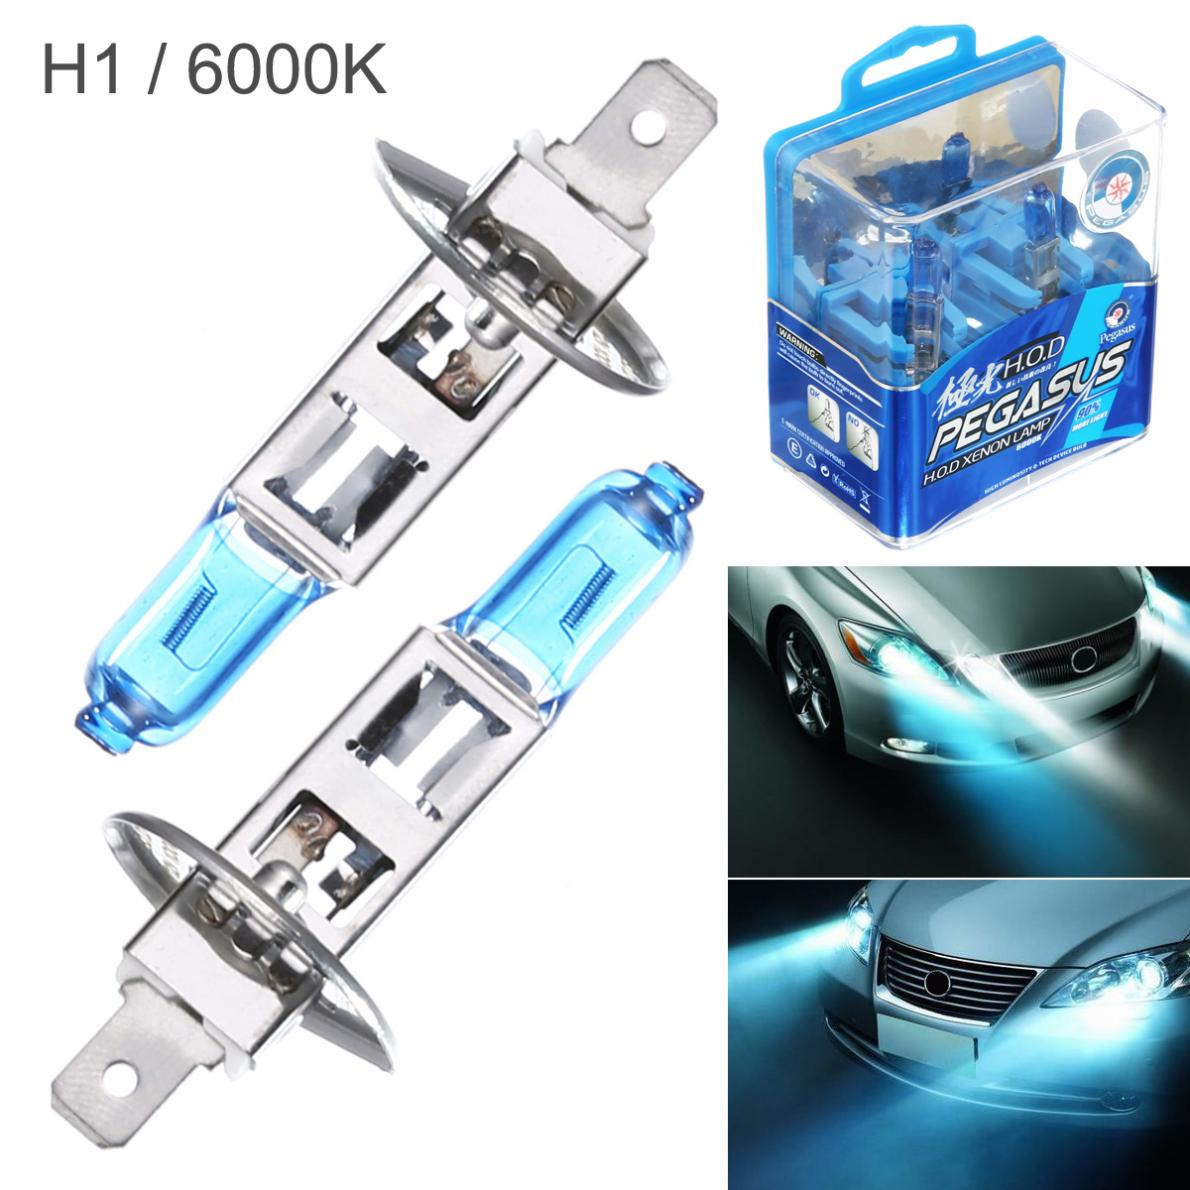 2pcs H1 H3 H4 9005 100W White Light Super Bright Car HOD Xenon Halogen Lamp Auto Front Headlight Fog Bulb 9005 hb3 55w halogen bulb super white headlight fog car lamp daytime running drl auto head light 5000k 12v